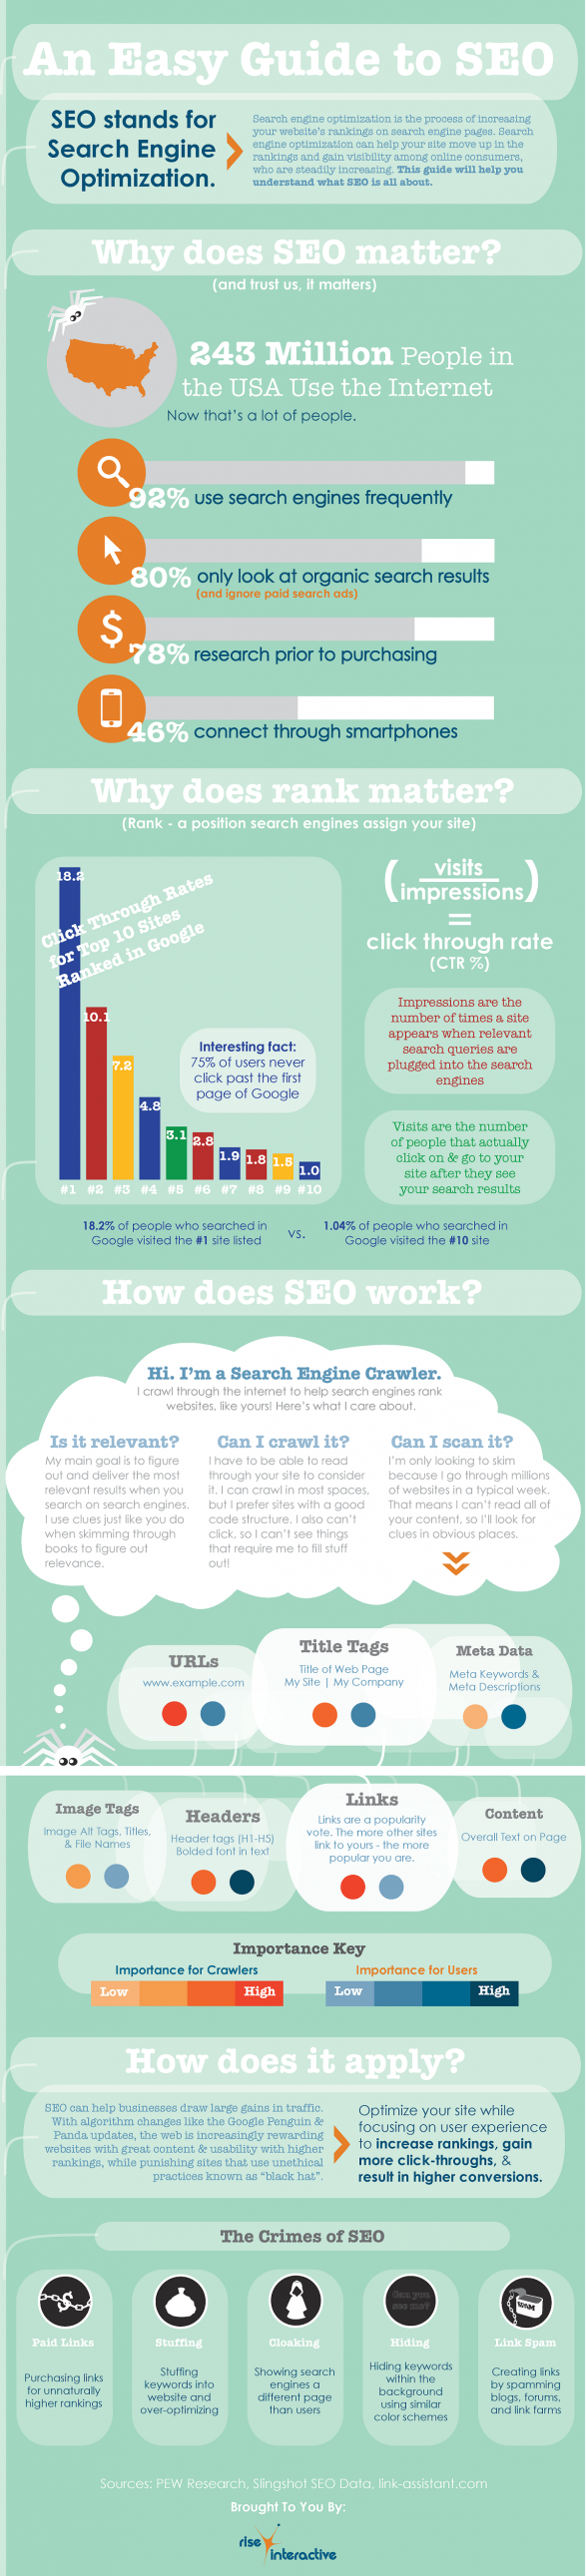 An Easy Guide to SEO